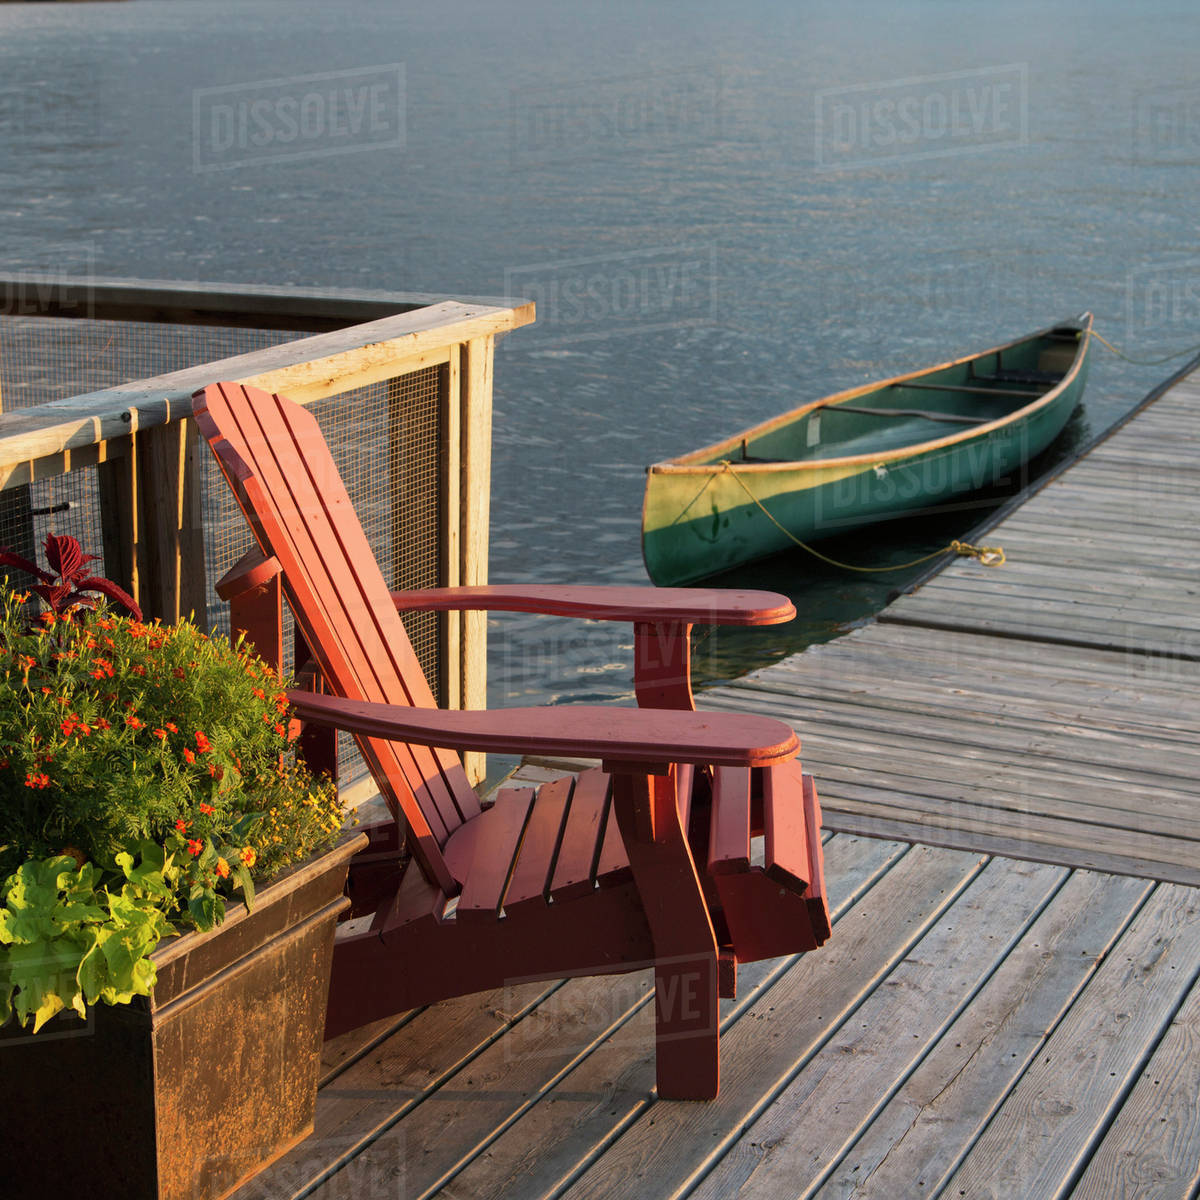 A canoe tied to a wooden dock with a chair and flower planter ... on wooden powerboat, wooden tube, wooden airboat, wooden cruiser, wooden yacht, wooden pontoon, wooden sloop, wooden speedboat, wooden barge, wooden warship, wooden motorboat, wooden sailboat, wooden cannon, wooden boat, wooden catamaran, wooden trawler, wooden pirogue, wooden ship, wooden houseboat, wooden rowing shell,